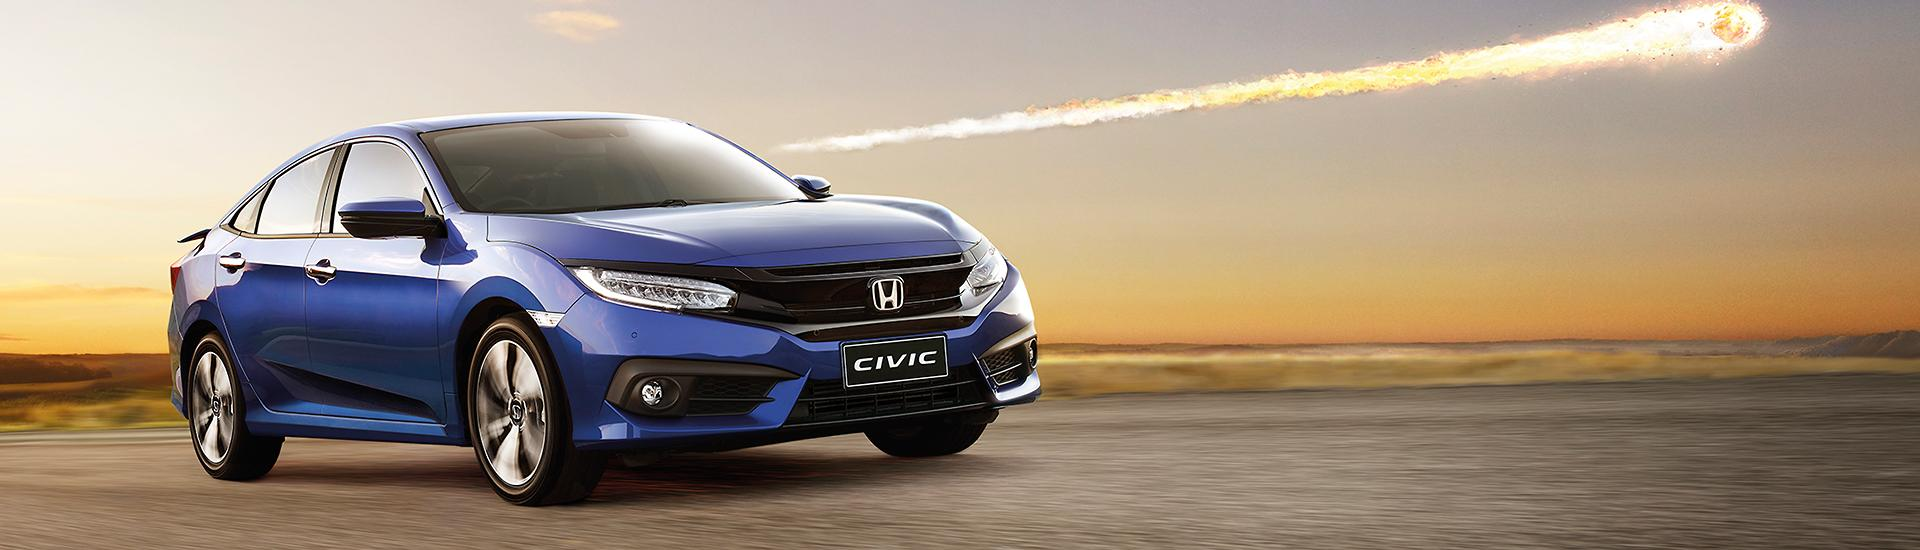 New Honda Cars For Sale In Australia Jazz Rs Civic Explore